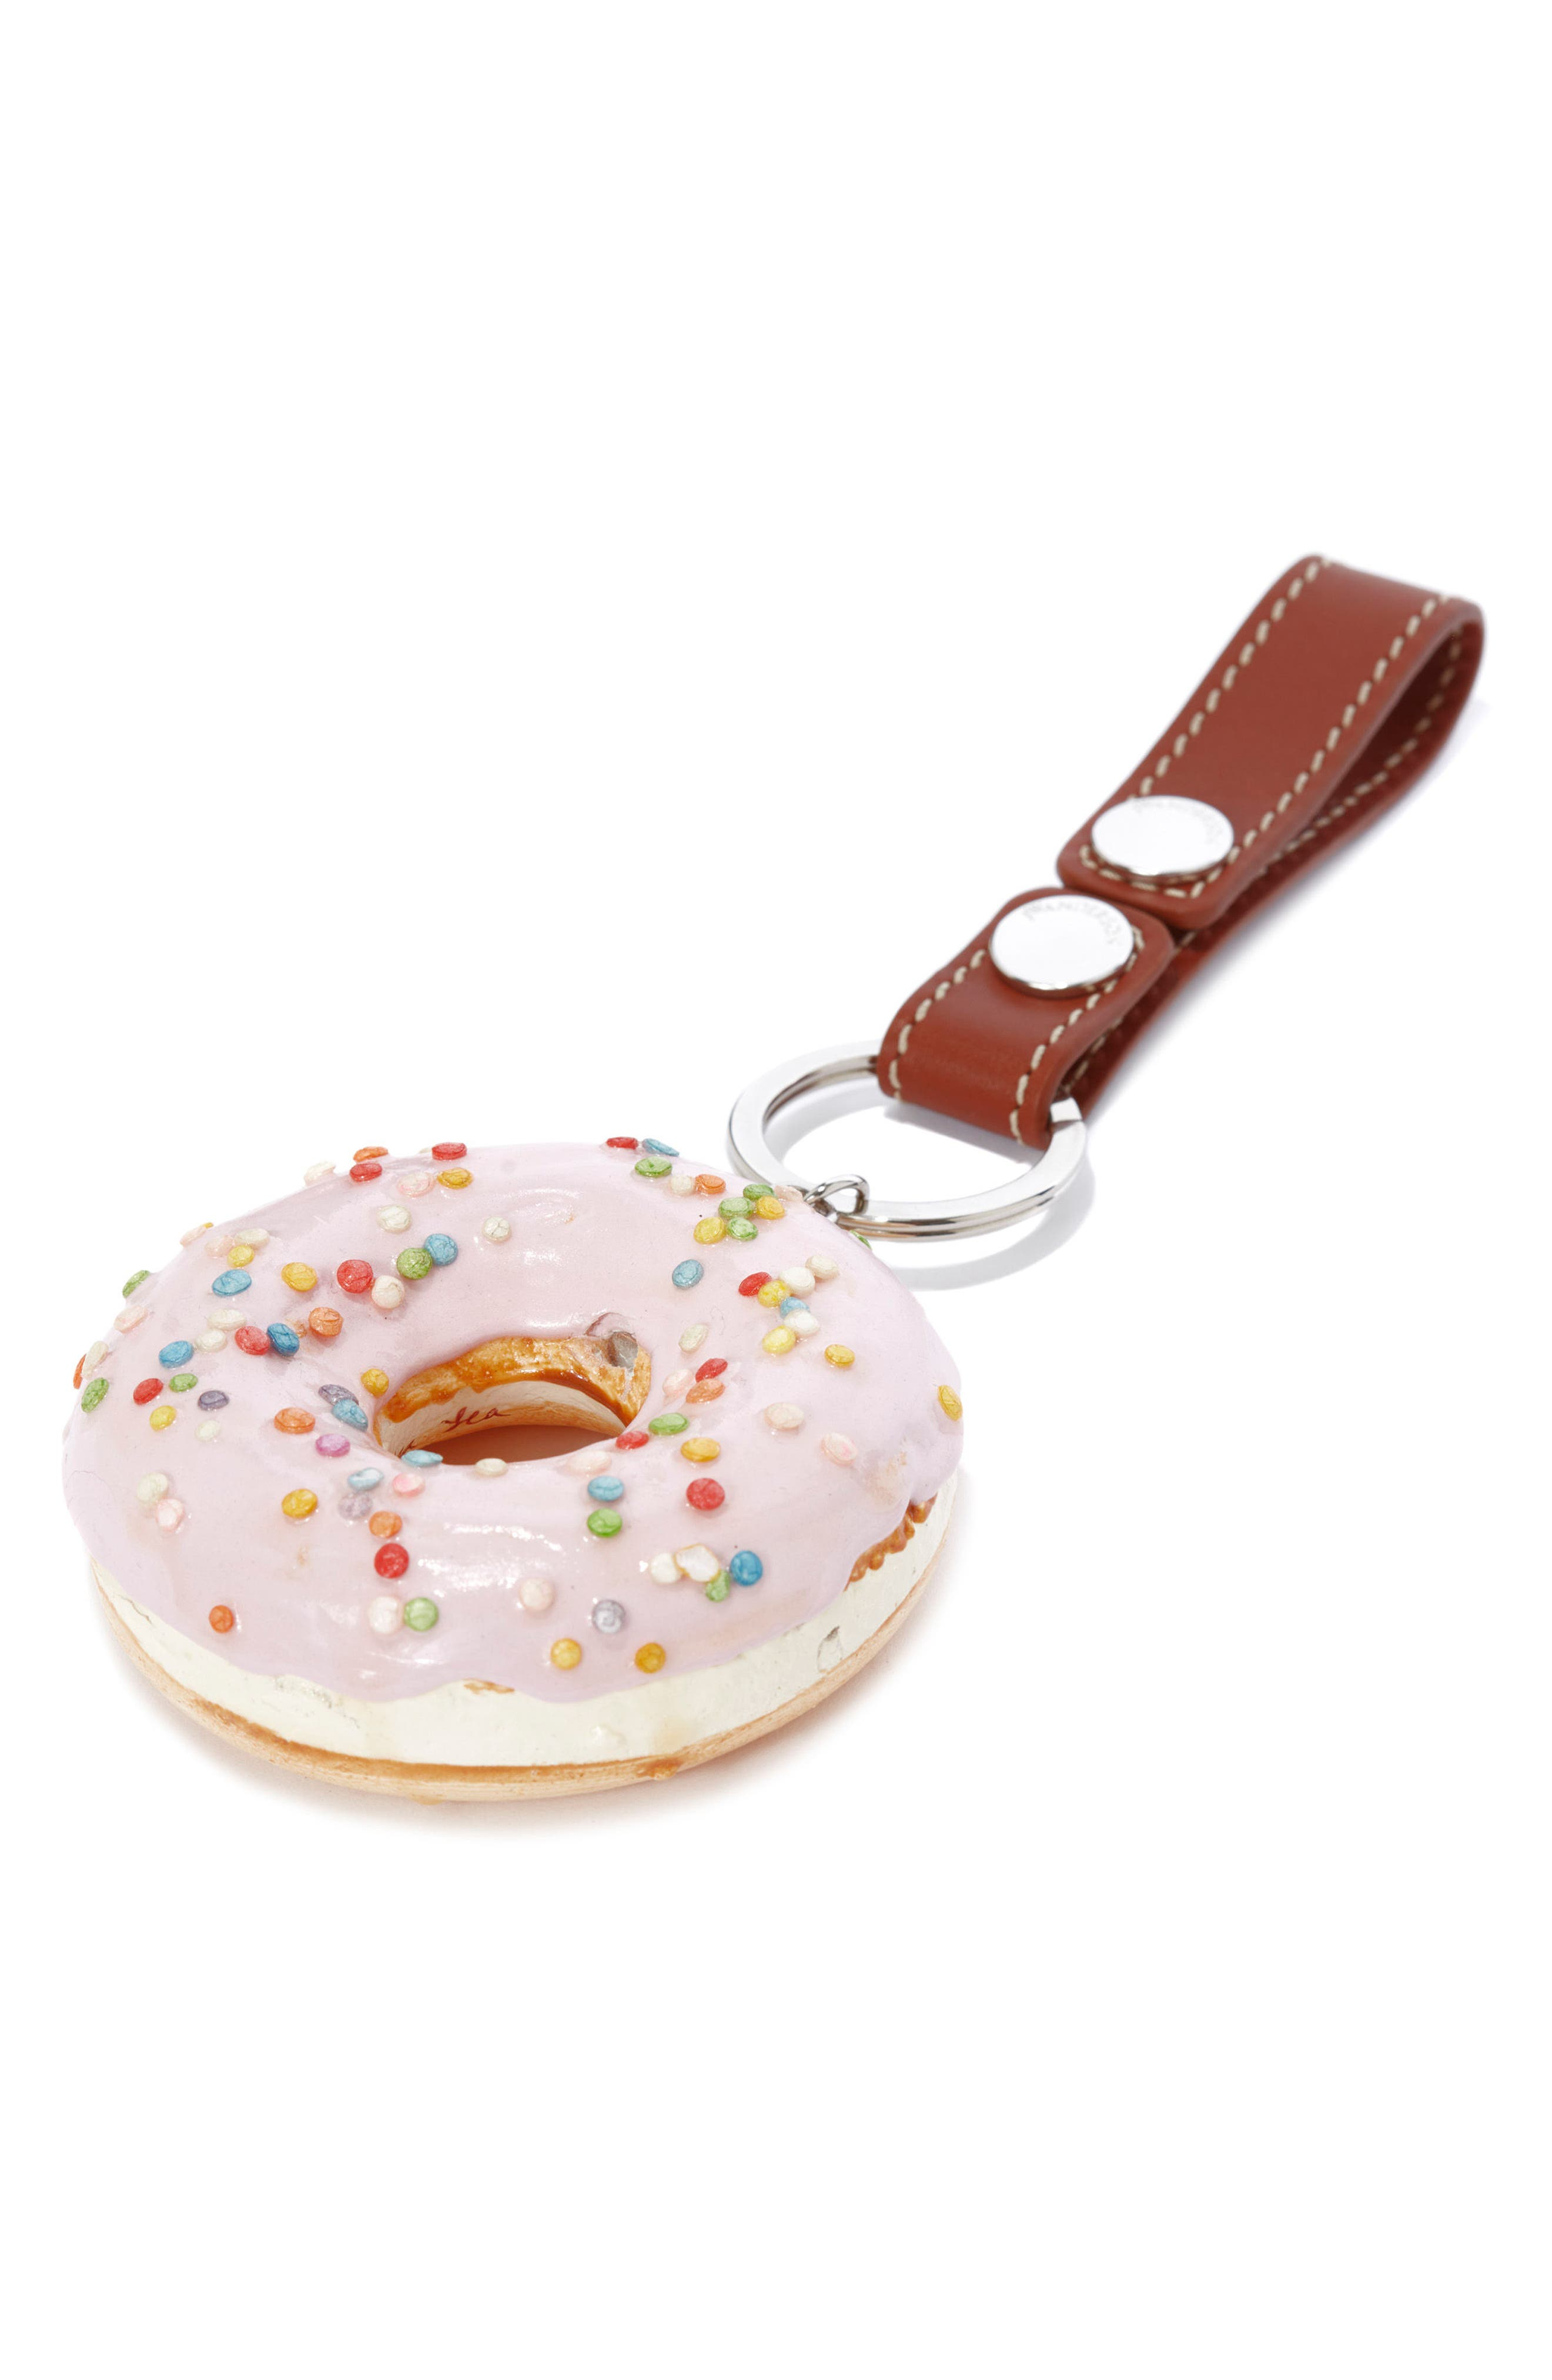 Doughnut Bag Charm,                             Alternate thumbnail 6, color,                             650